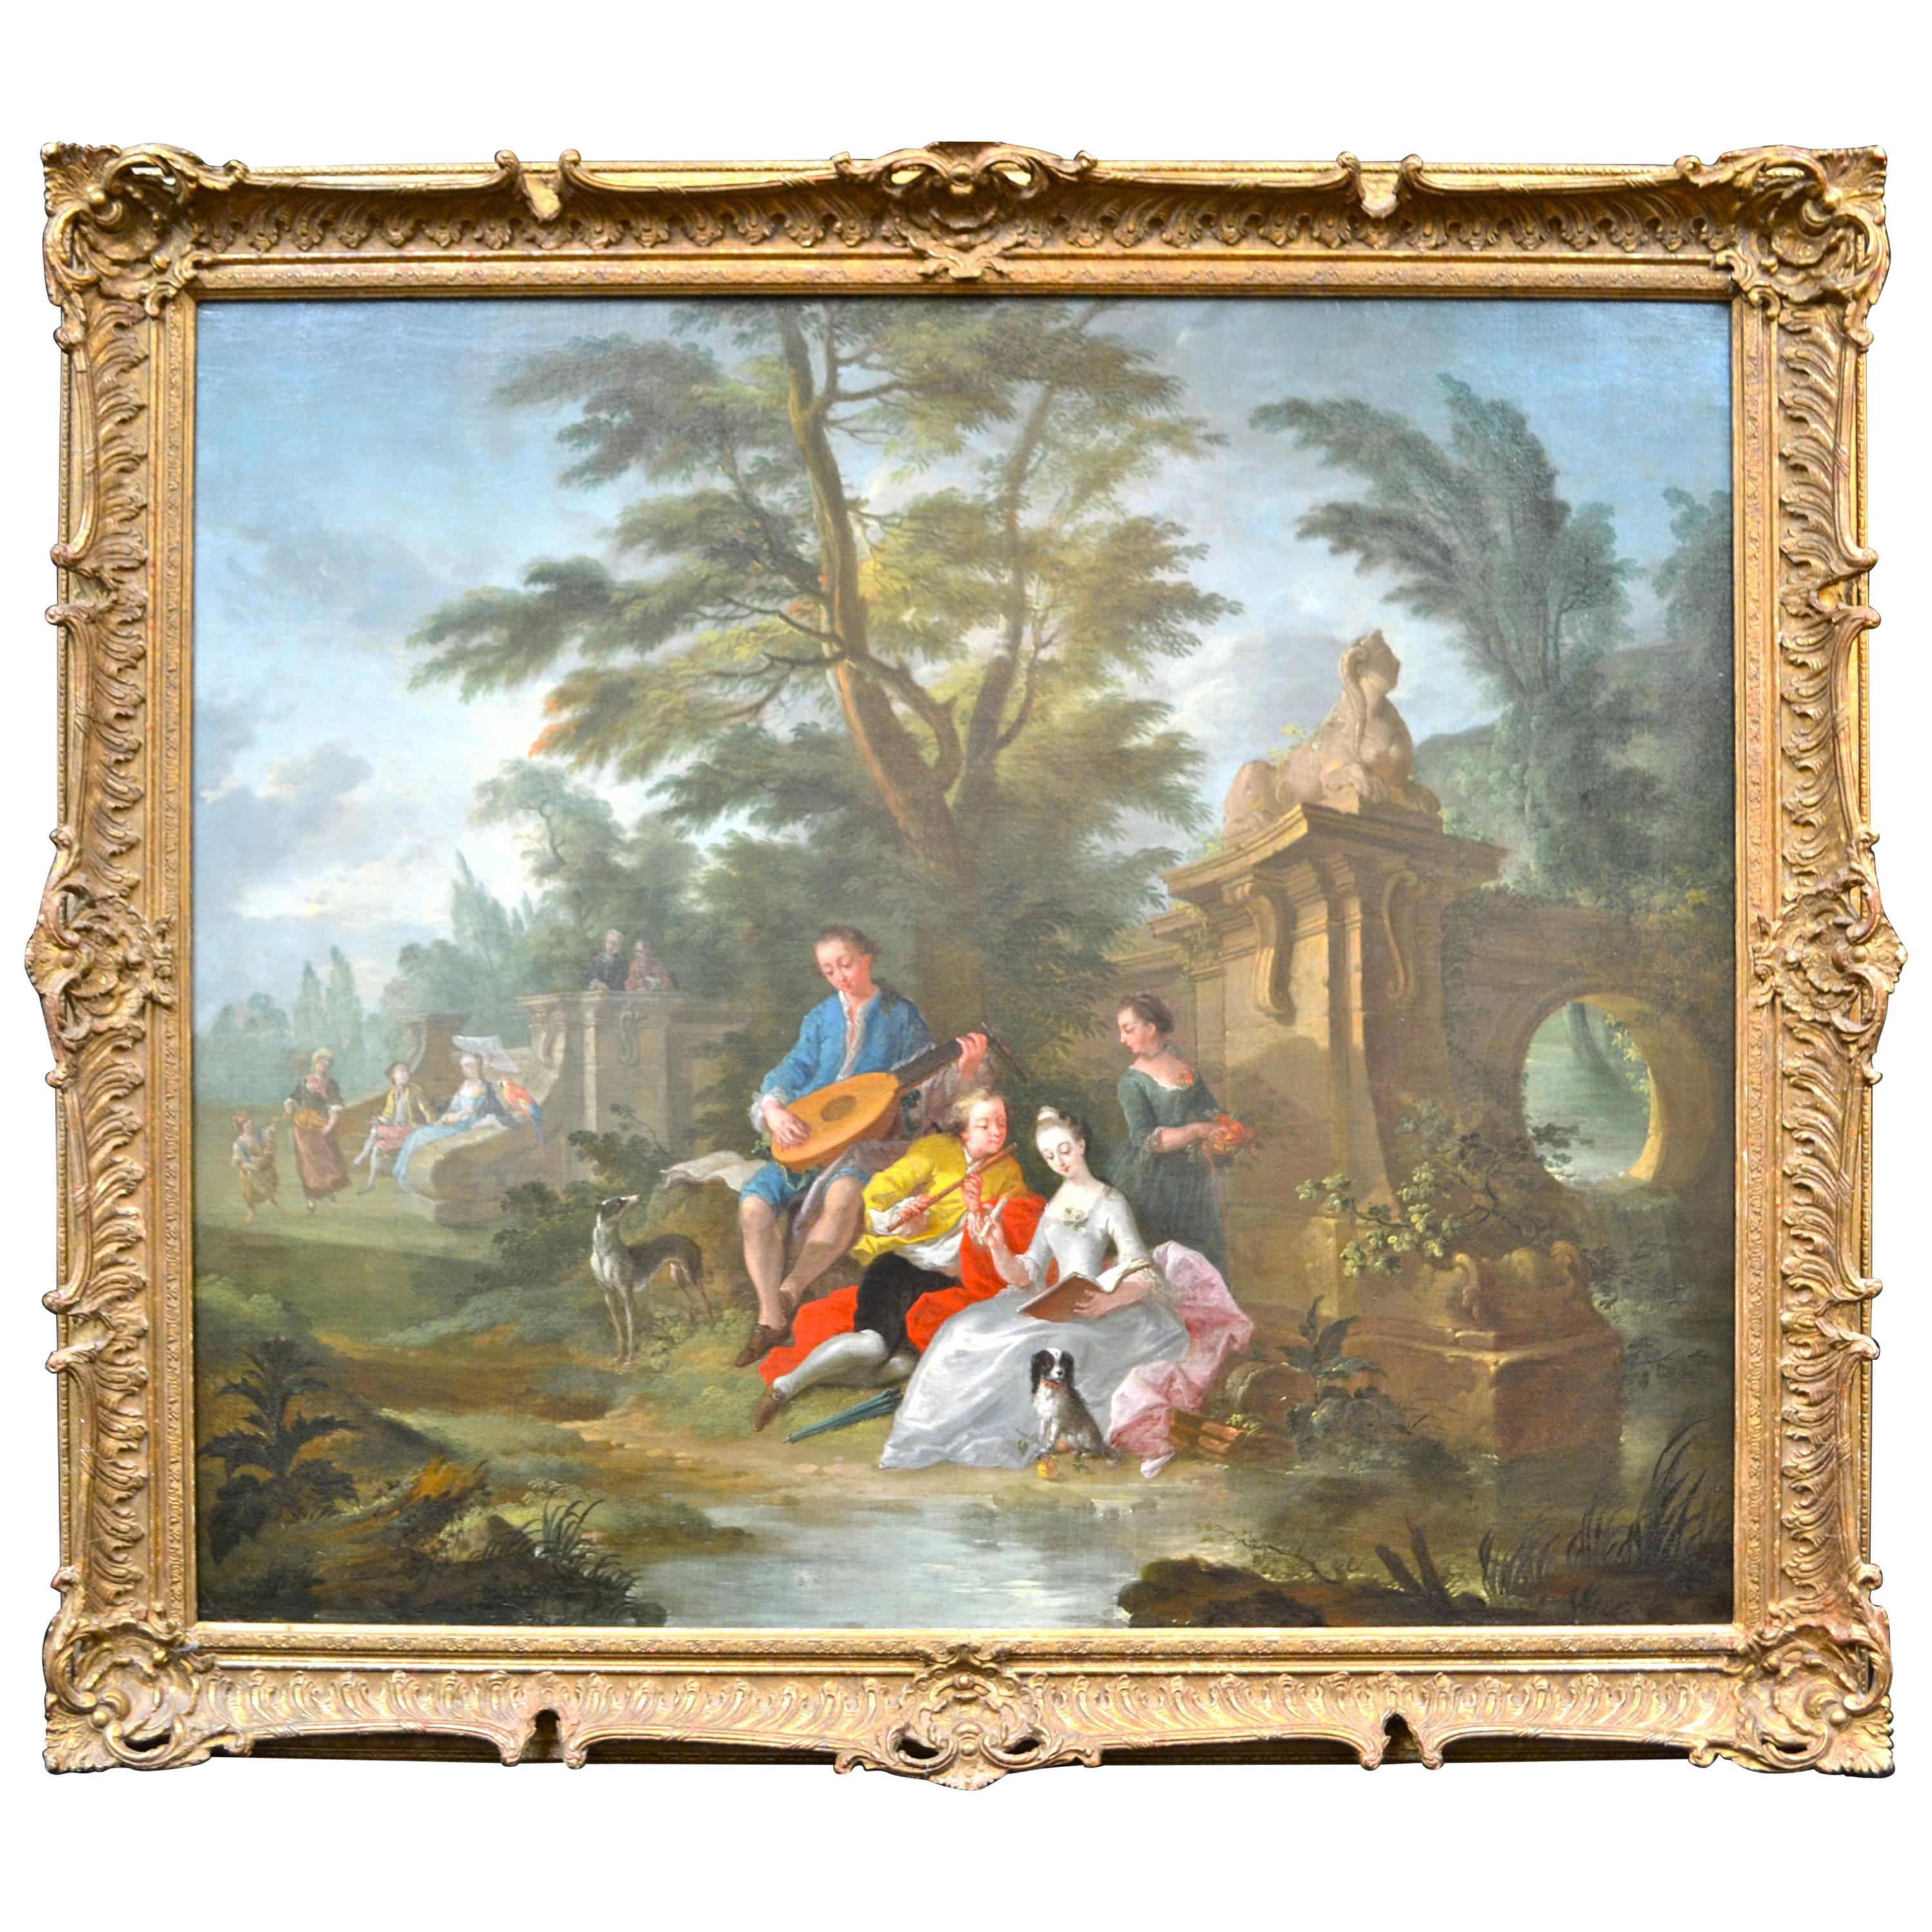 18th Century Painting Showing Figures in a Landscape Attributed to Pater